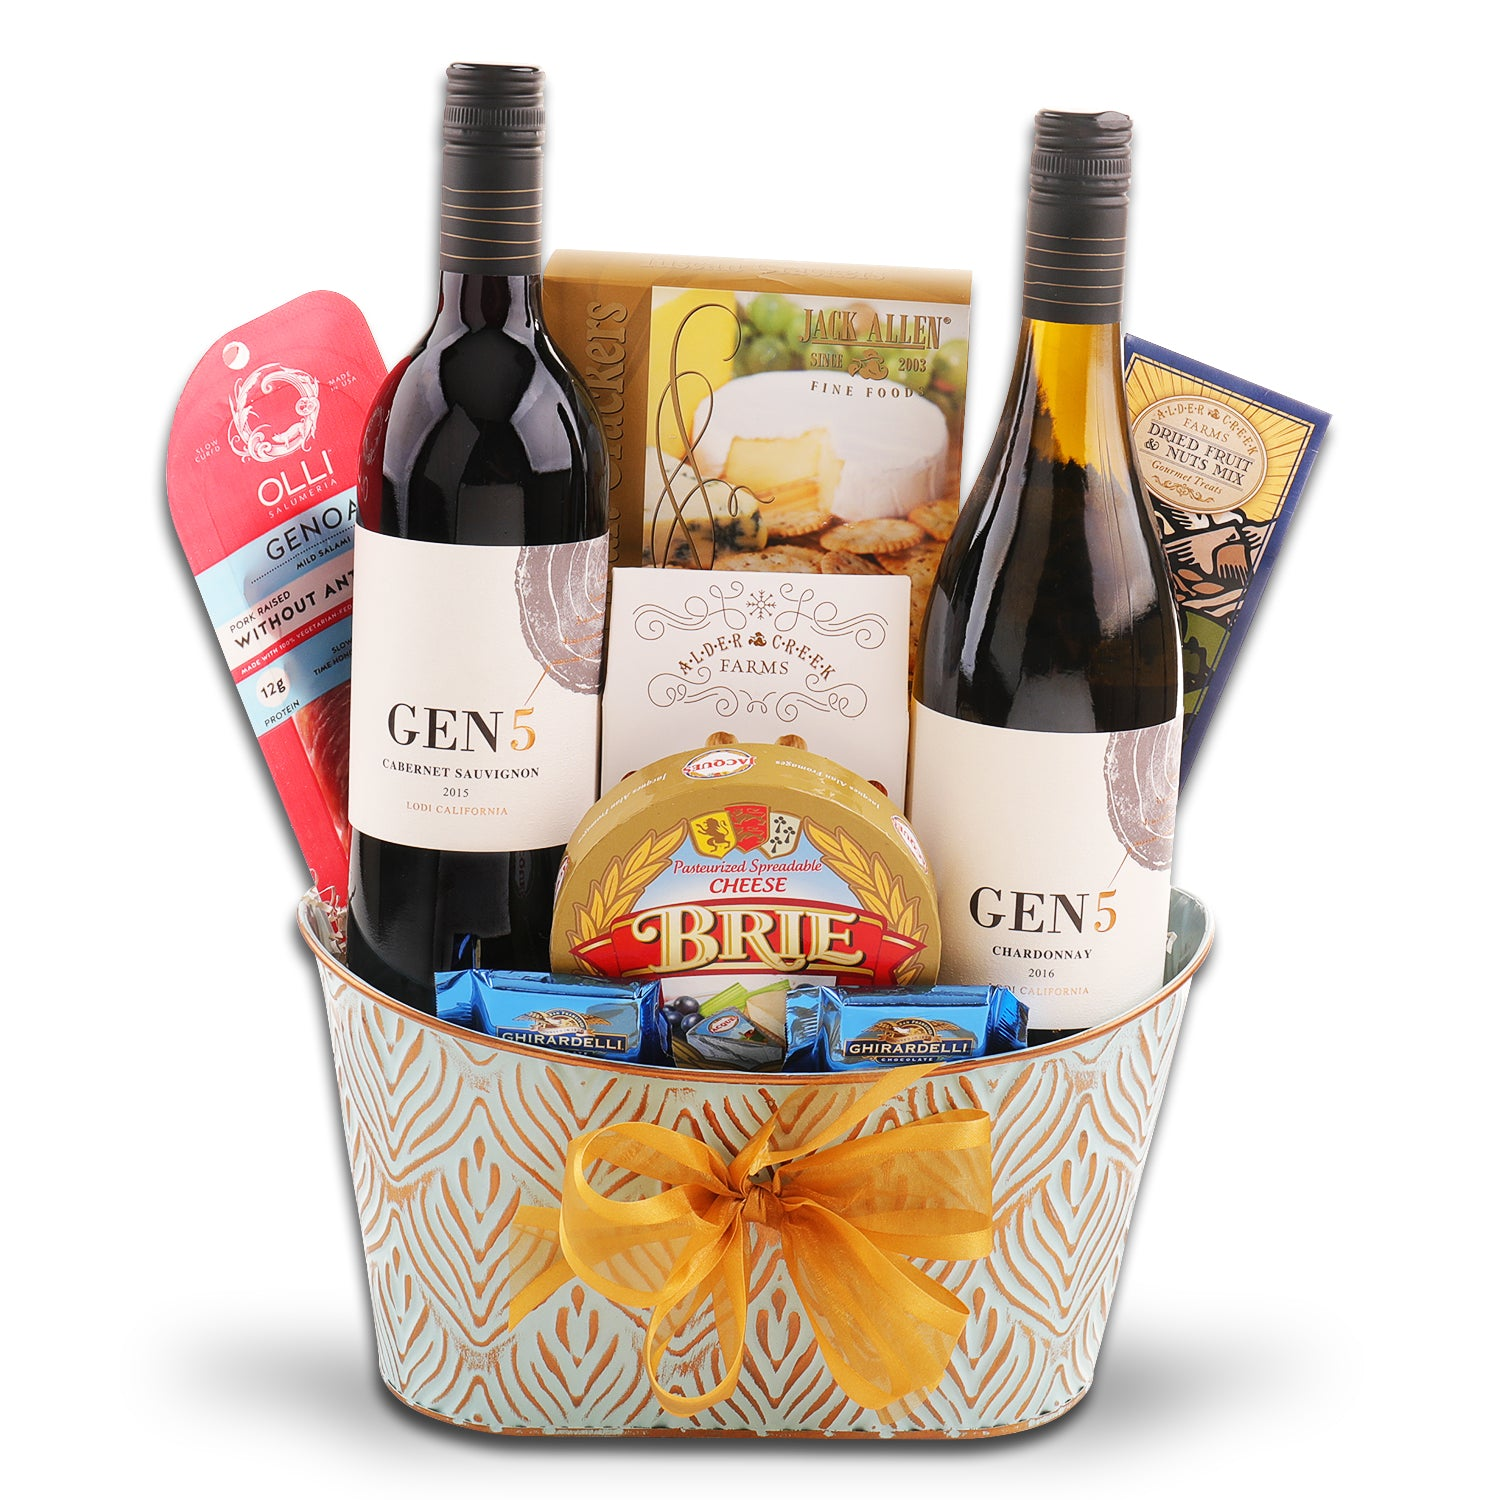 Gen5 Two bottle Gift Basket